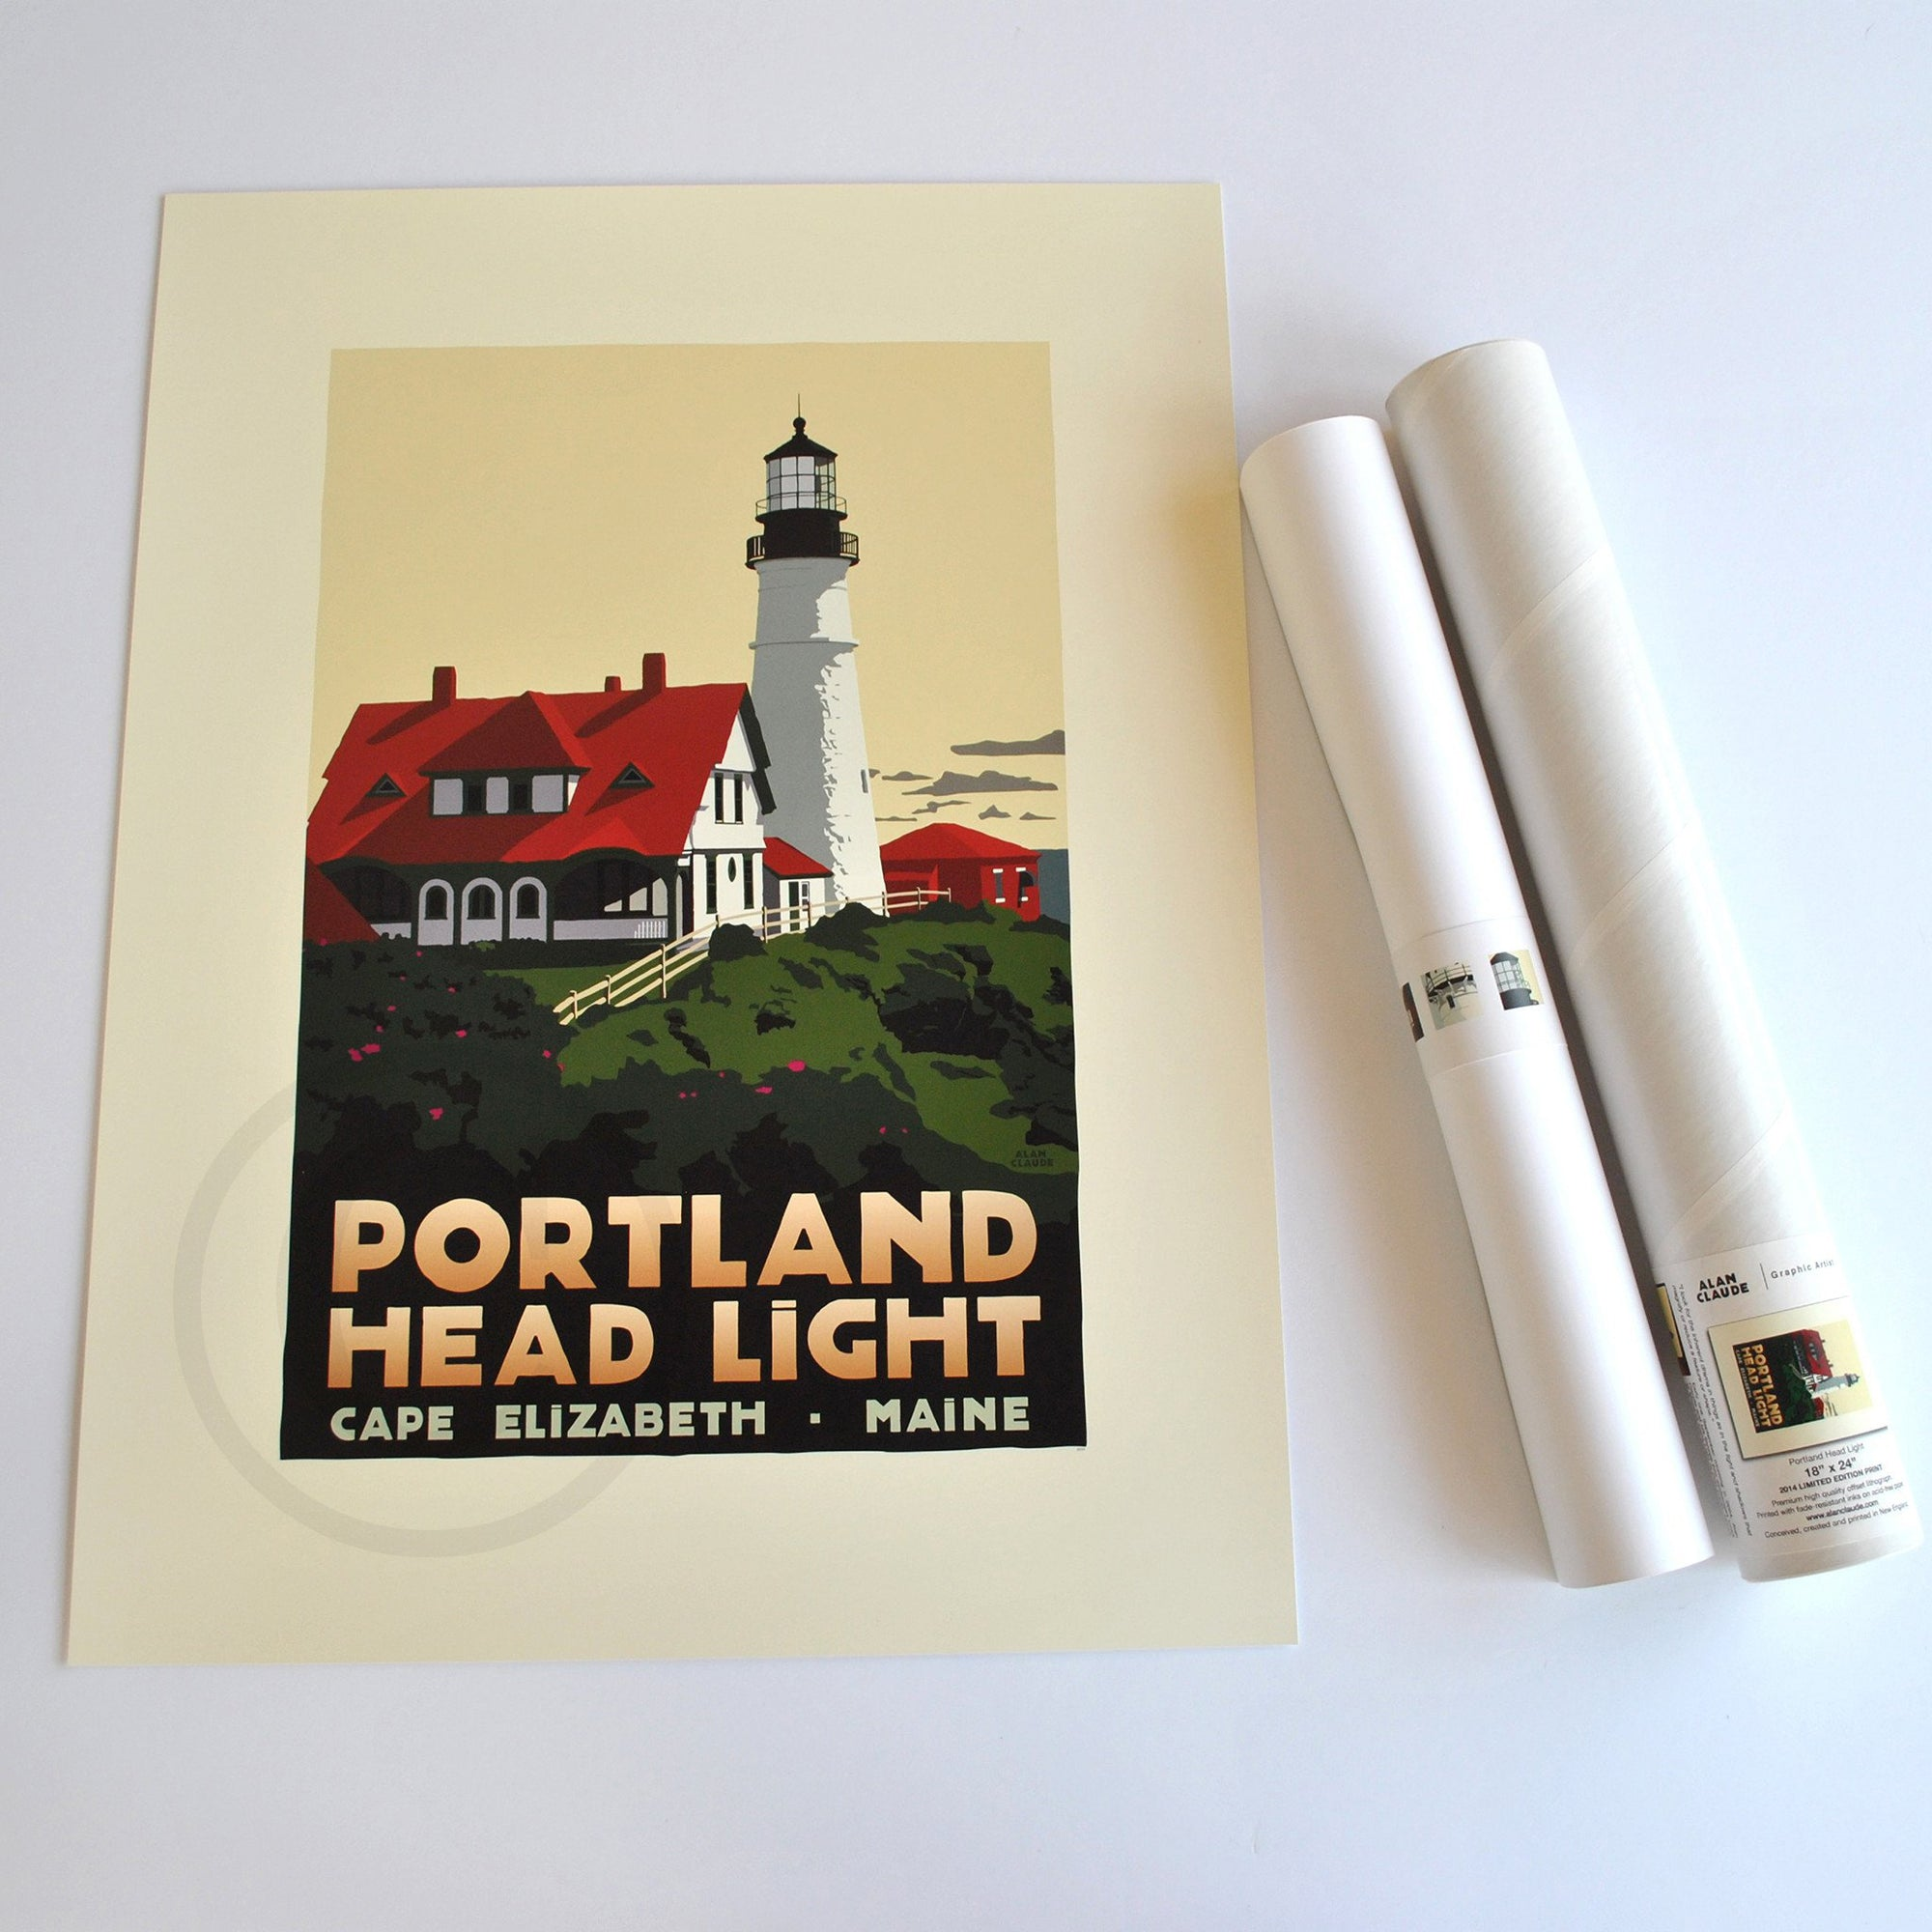 "Portland Head Light Lighthouse Art Print 18"" x 24"" Travel Poster - Maine"